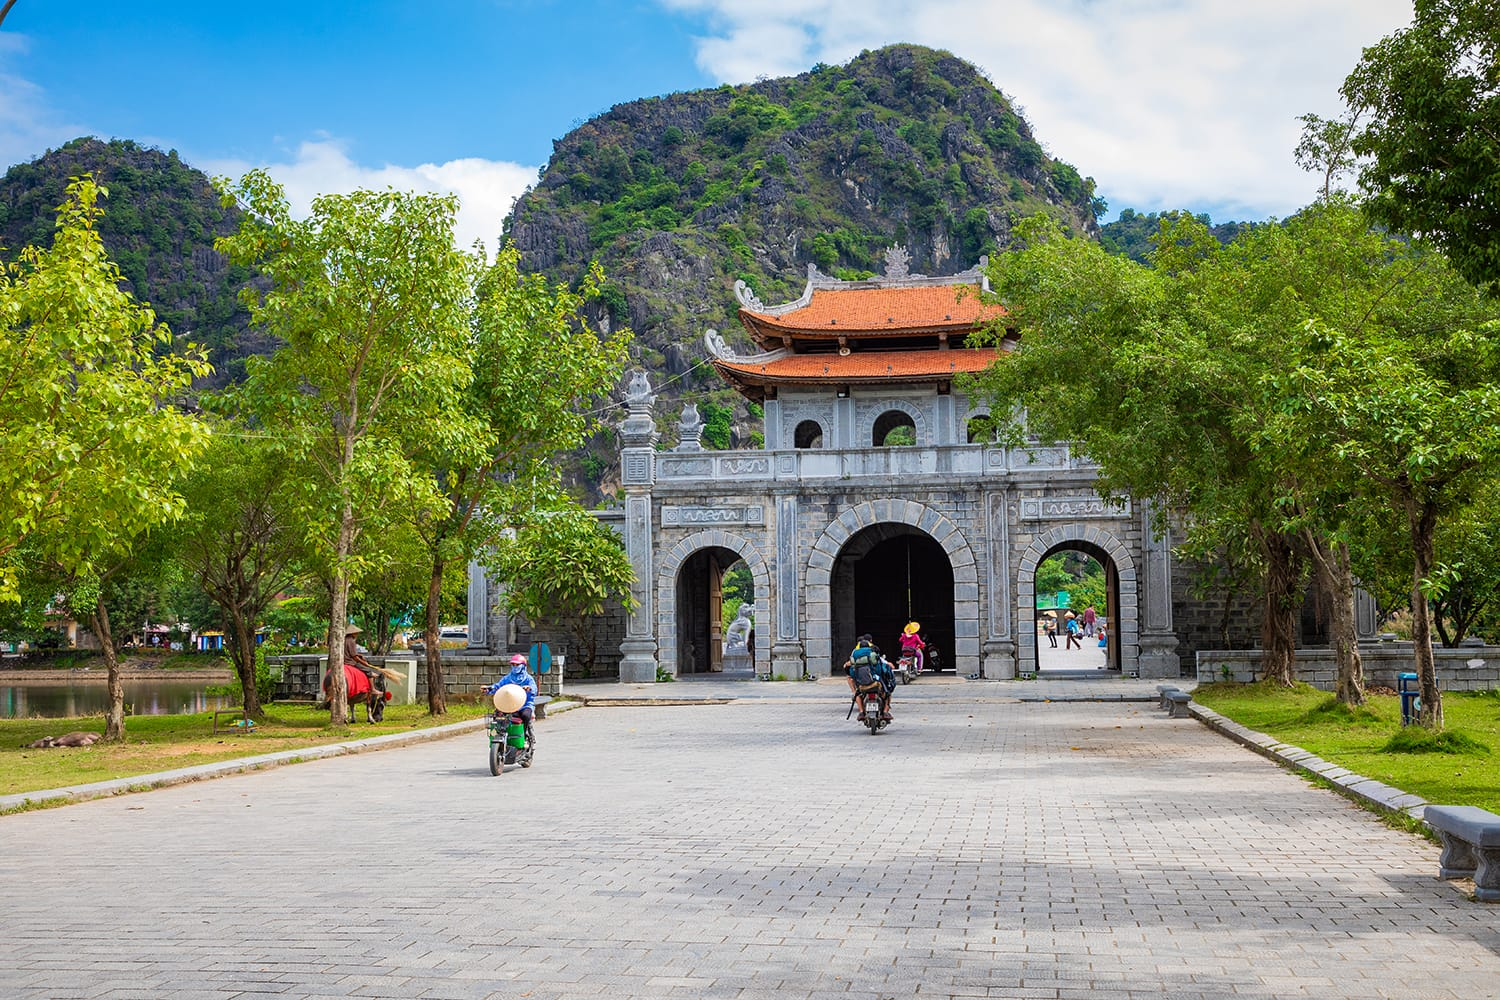 Temple of Dinh Tien Hoang at Hoa Lu Ninh Binh, first capital of Vietnam